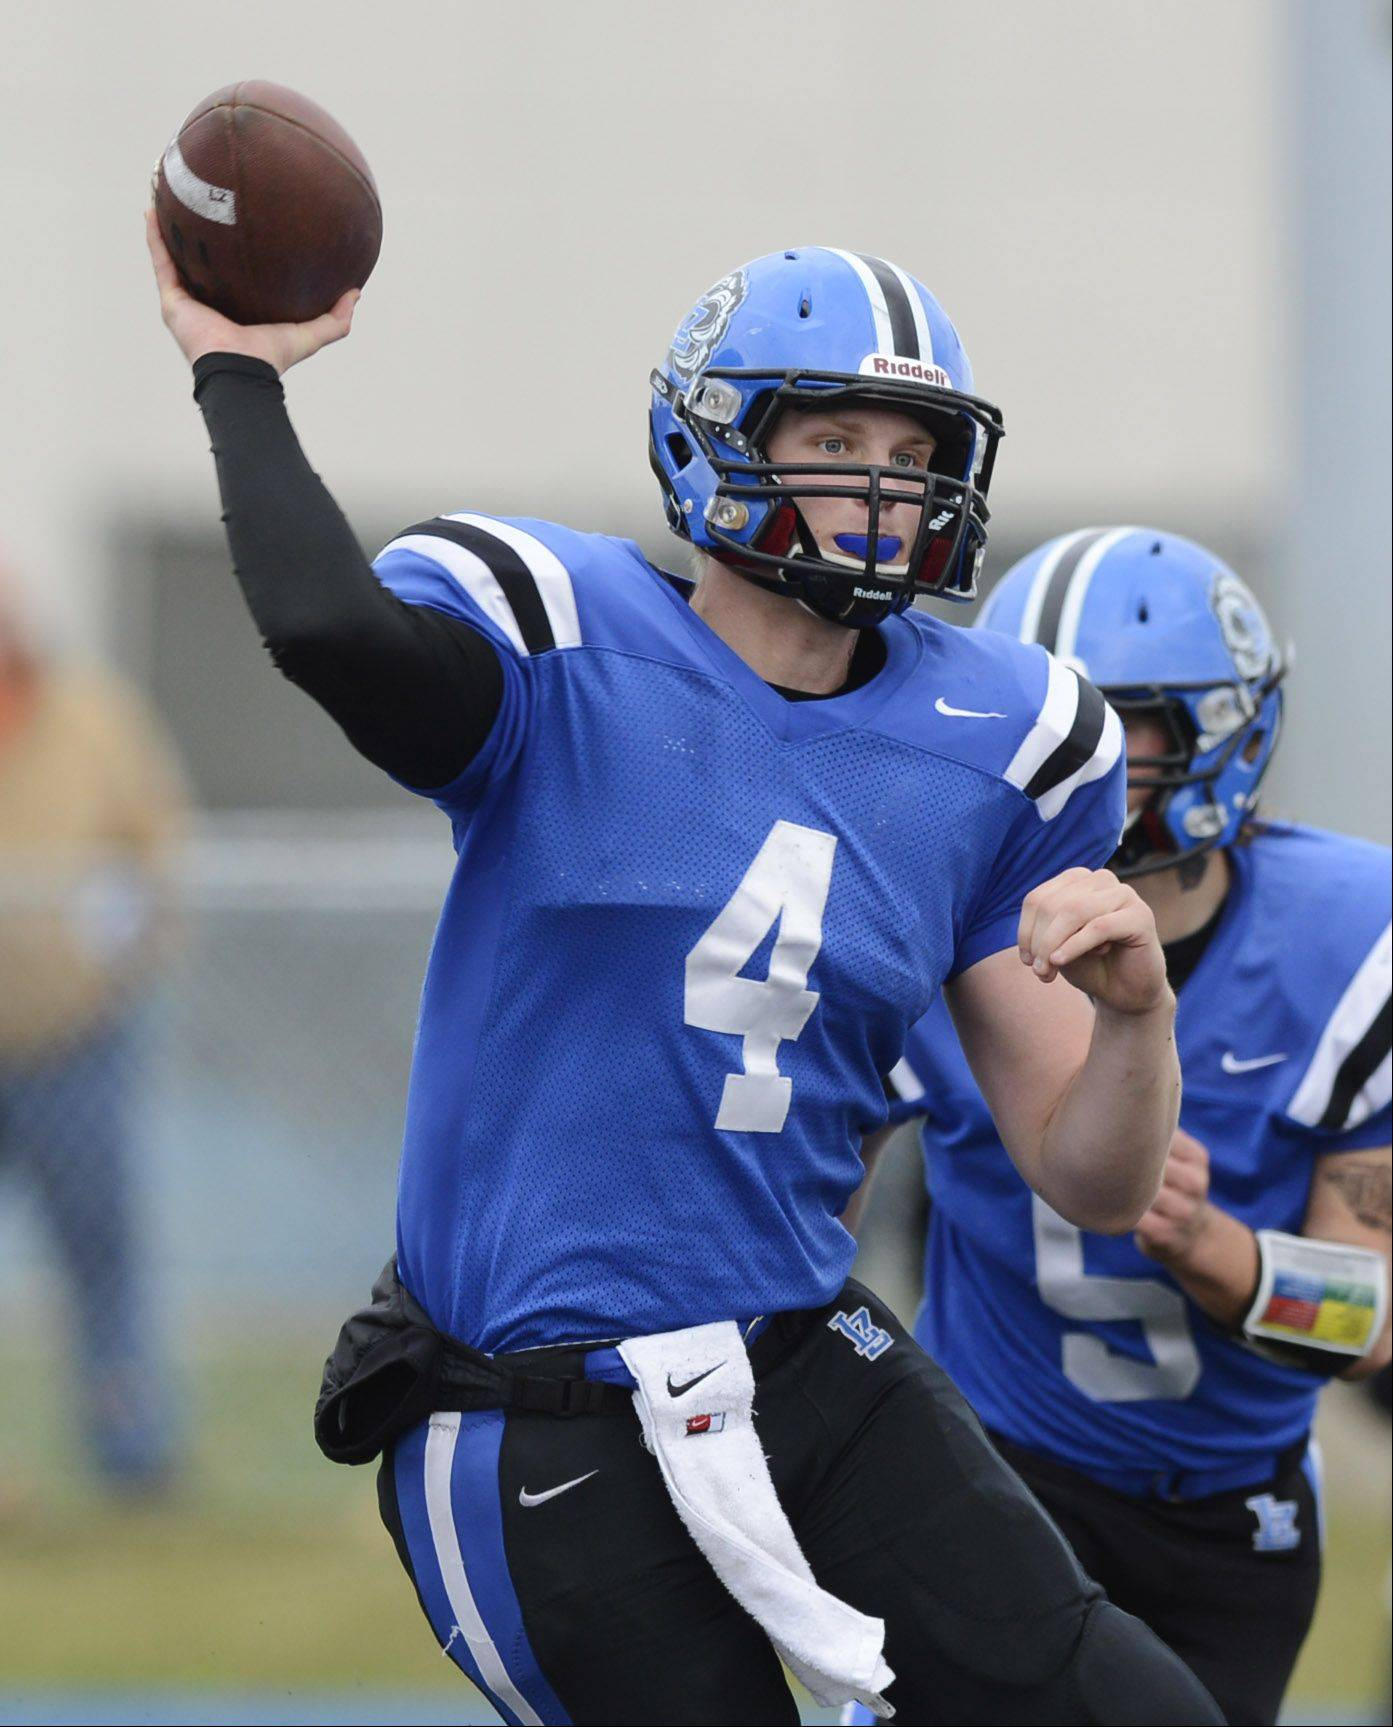 Lake Zurich quarterback Noah Allgood throws a pass during Saturday's class 7A playoff game against Elk Grove.